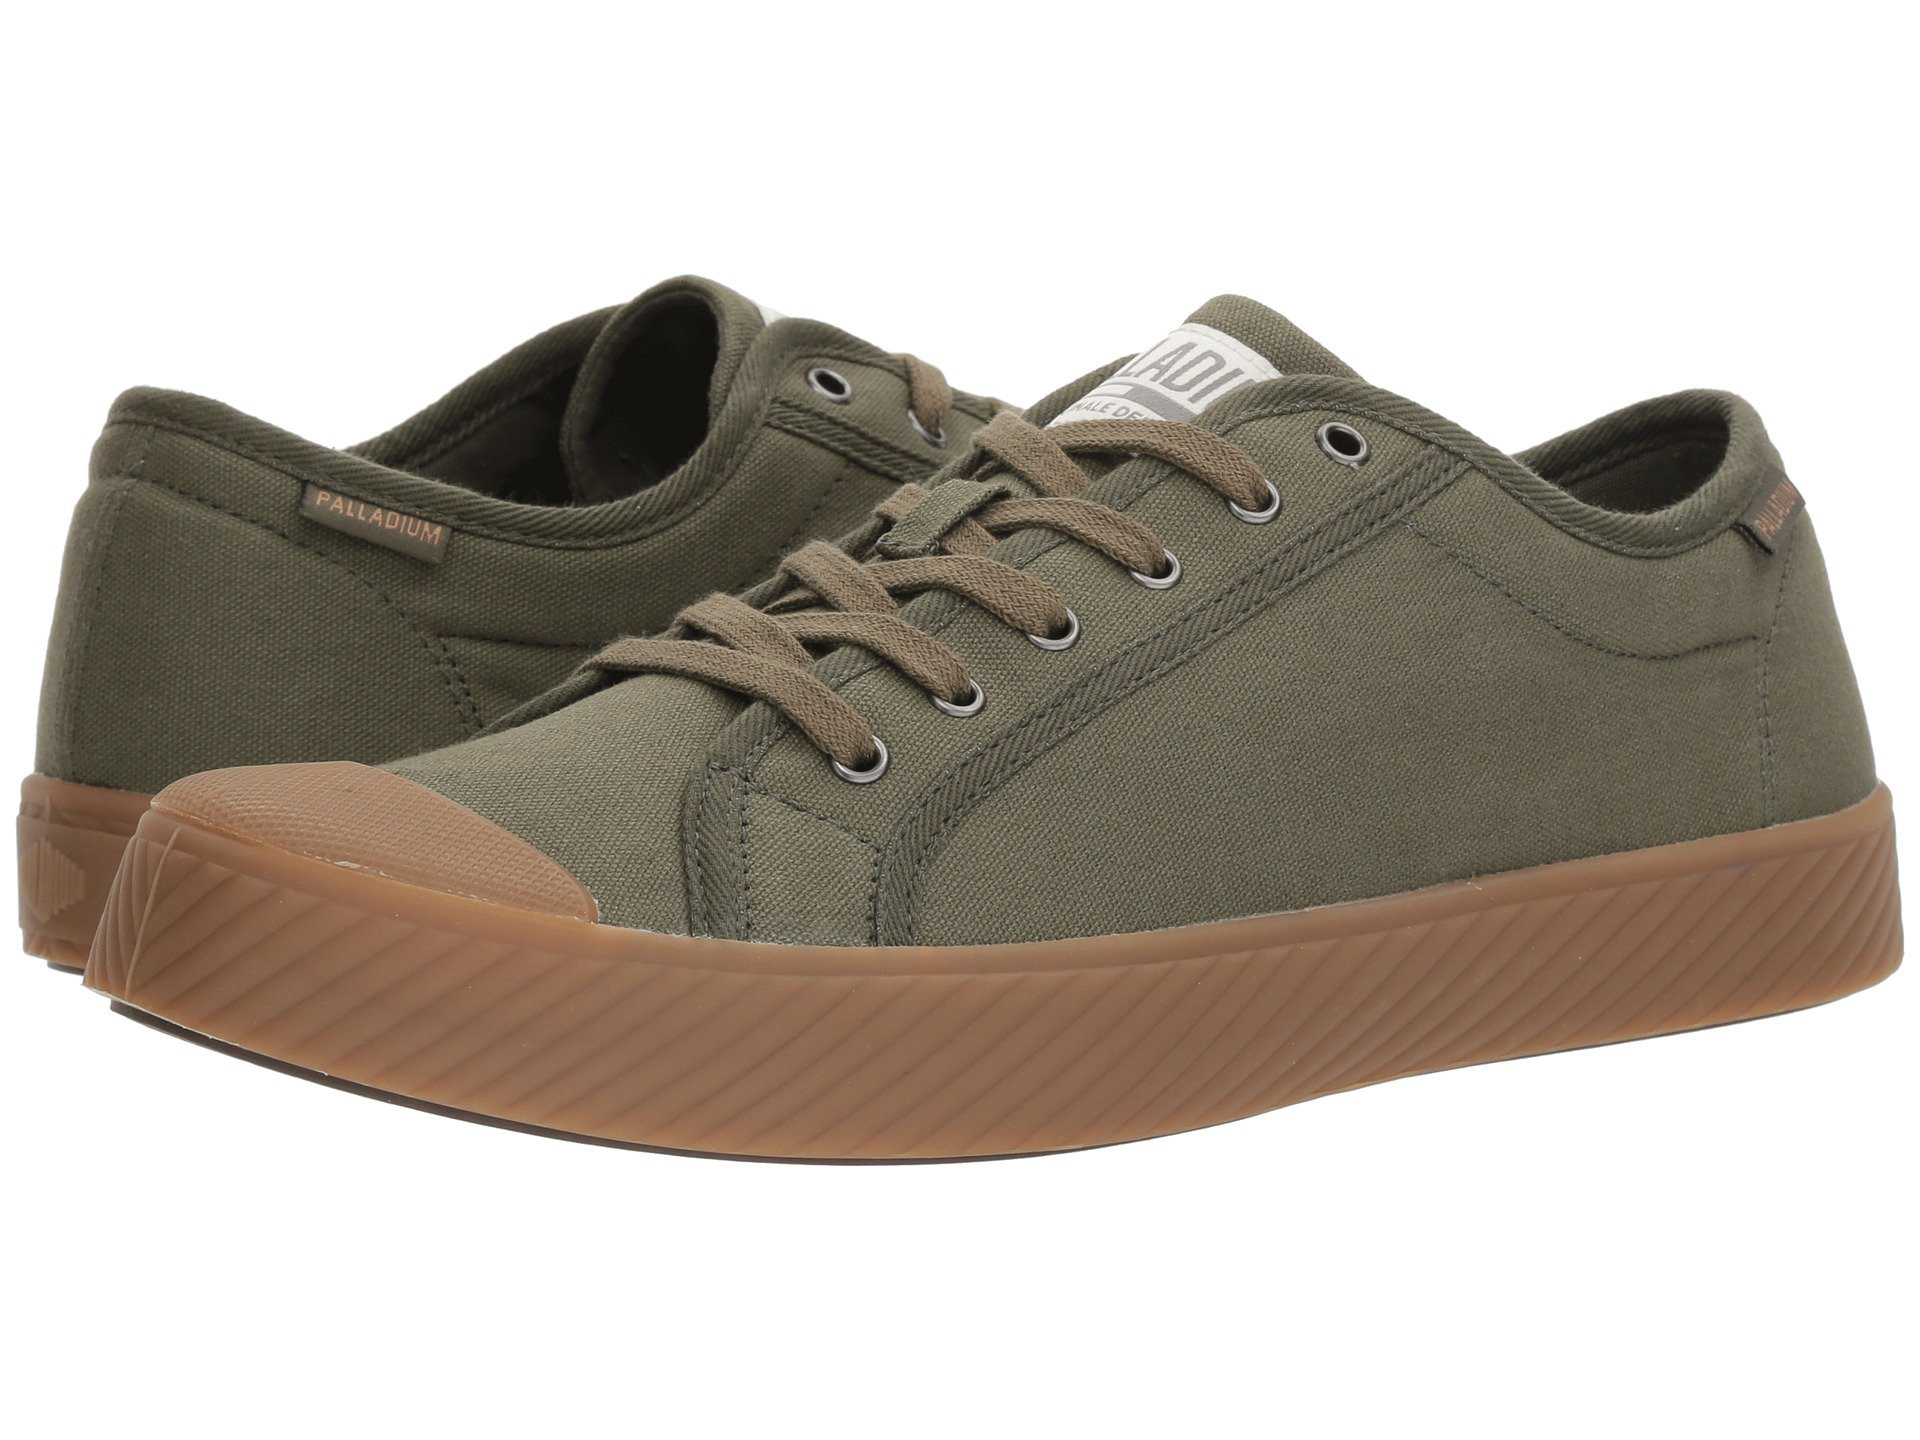 Palladium Pallaphoenix OG CVS Sneaker Economical, stylish, and eye-catching shoes